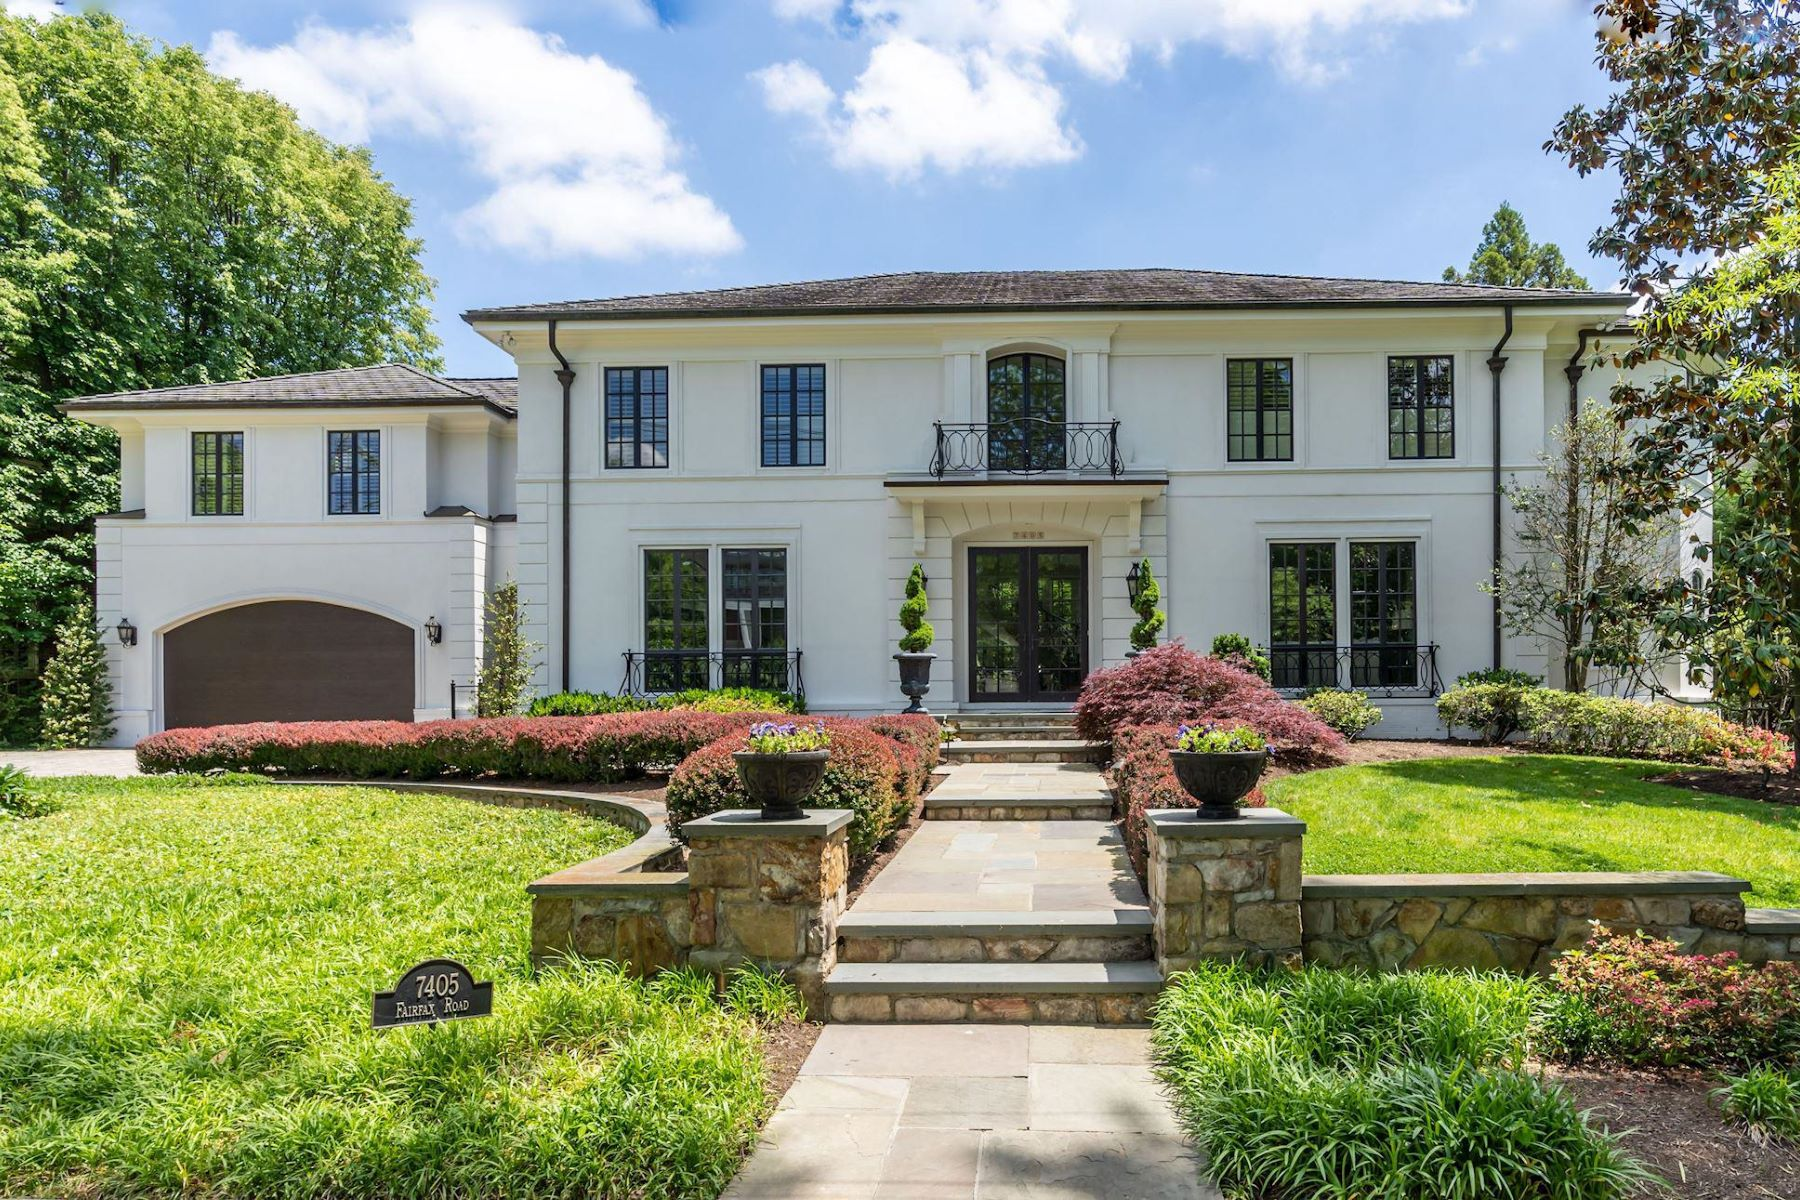 Single Family Homes for Sale at 7405 Fairfax Rd Bethesda, Maryland 20814 United States